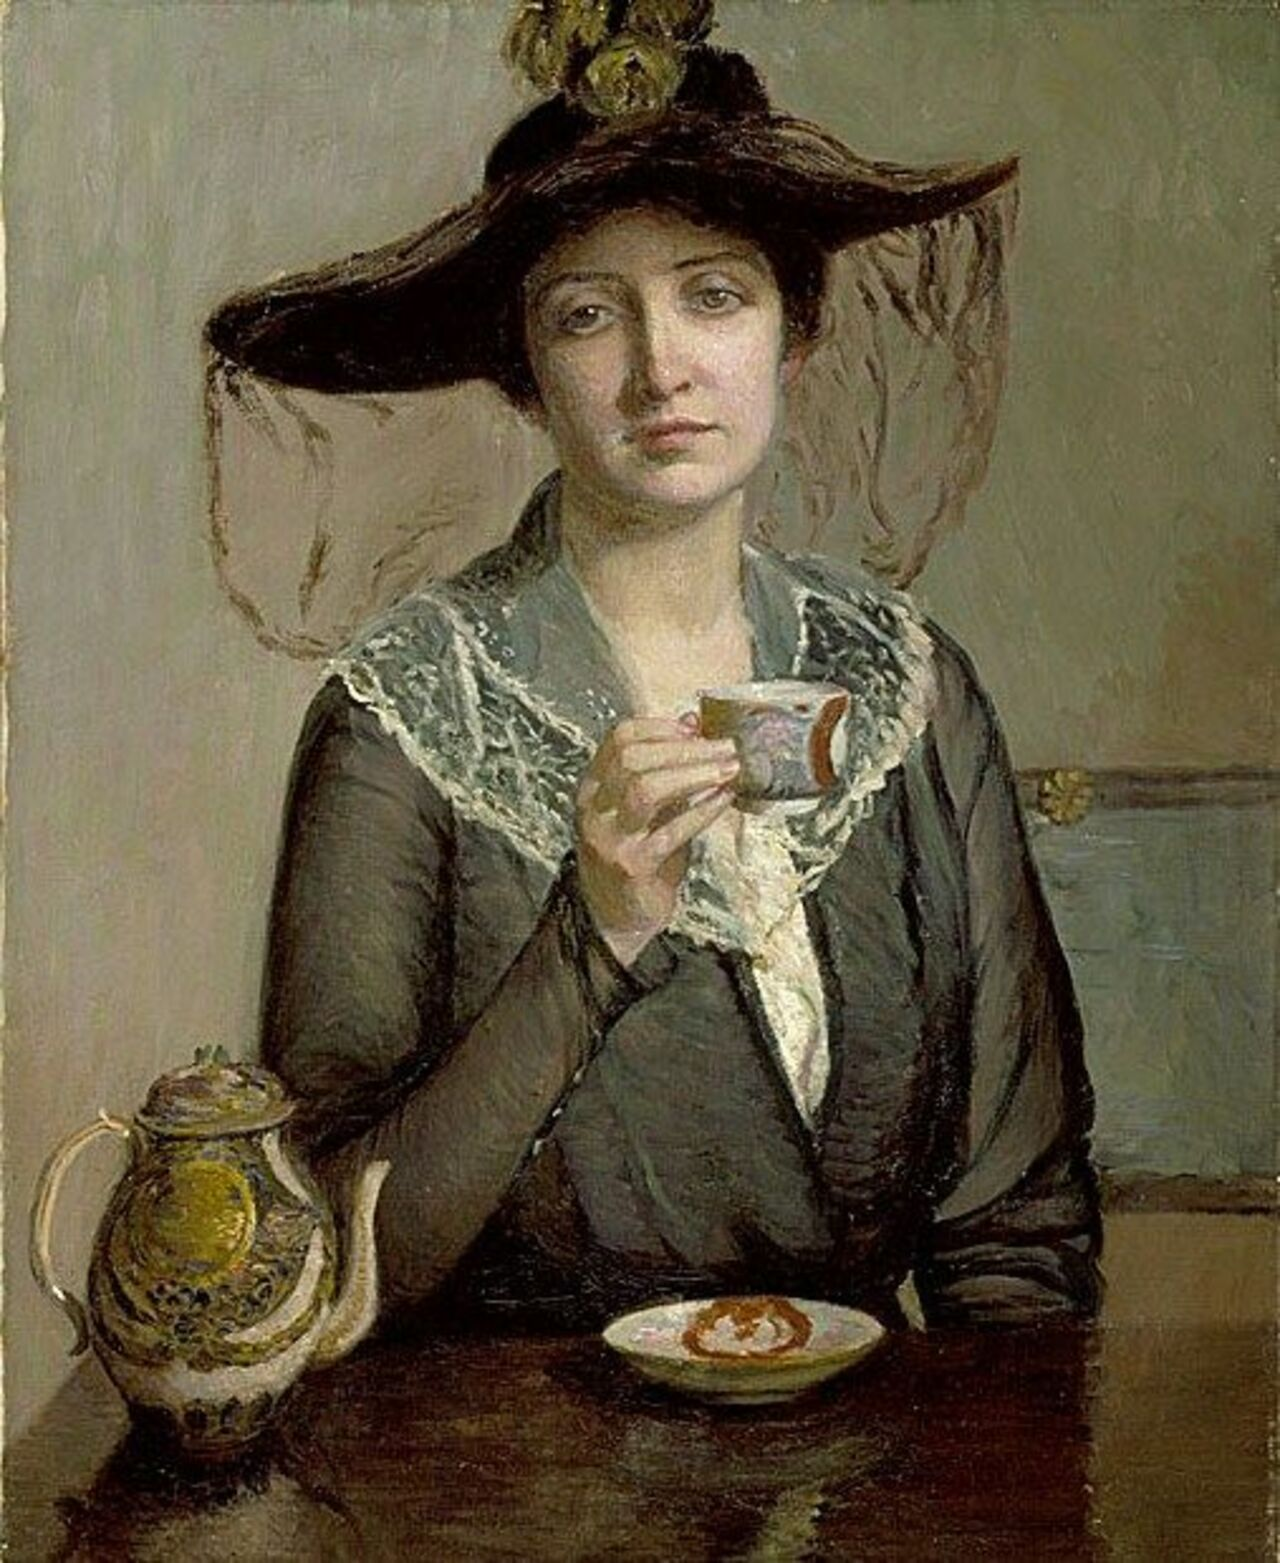 RT @marcelcel3: Its About Time: Tea - Lilla Cabot Perry (American artist) 1848 - 1933#art #painting #twitart https://t.co/tVV3Tm4dfd